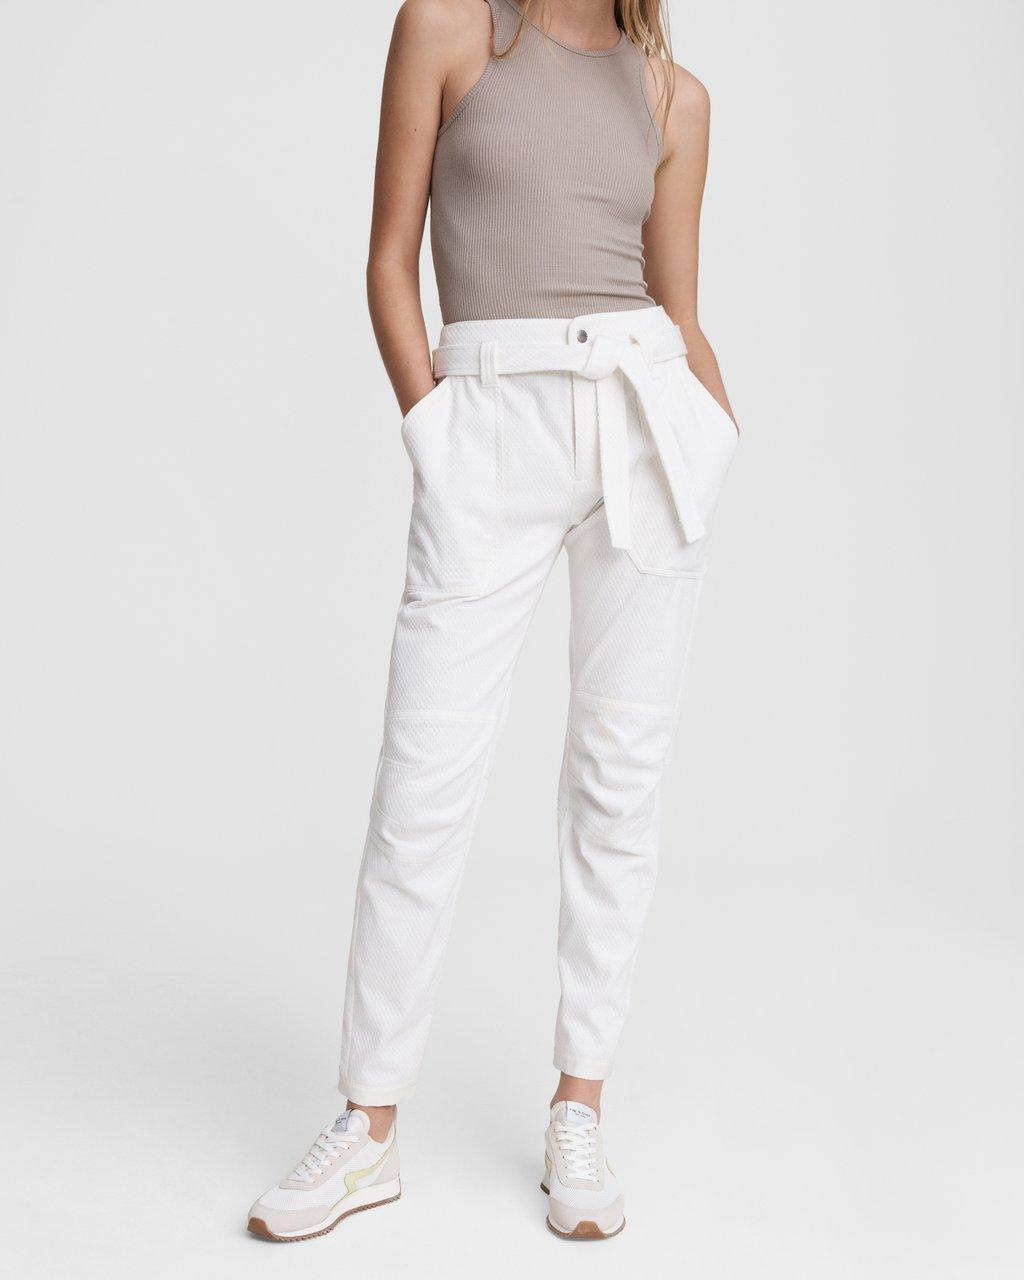 Abby Cotton Pant